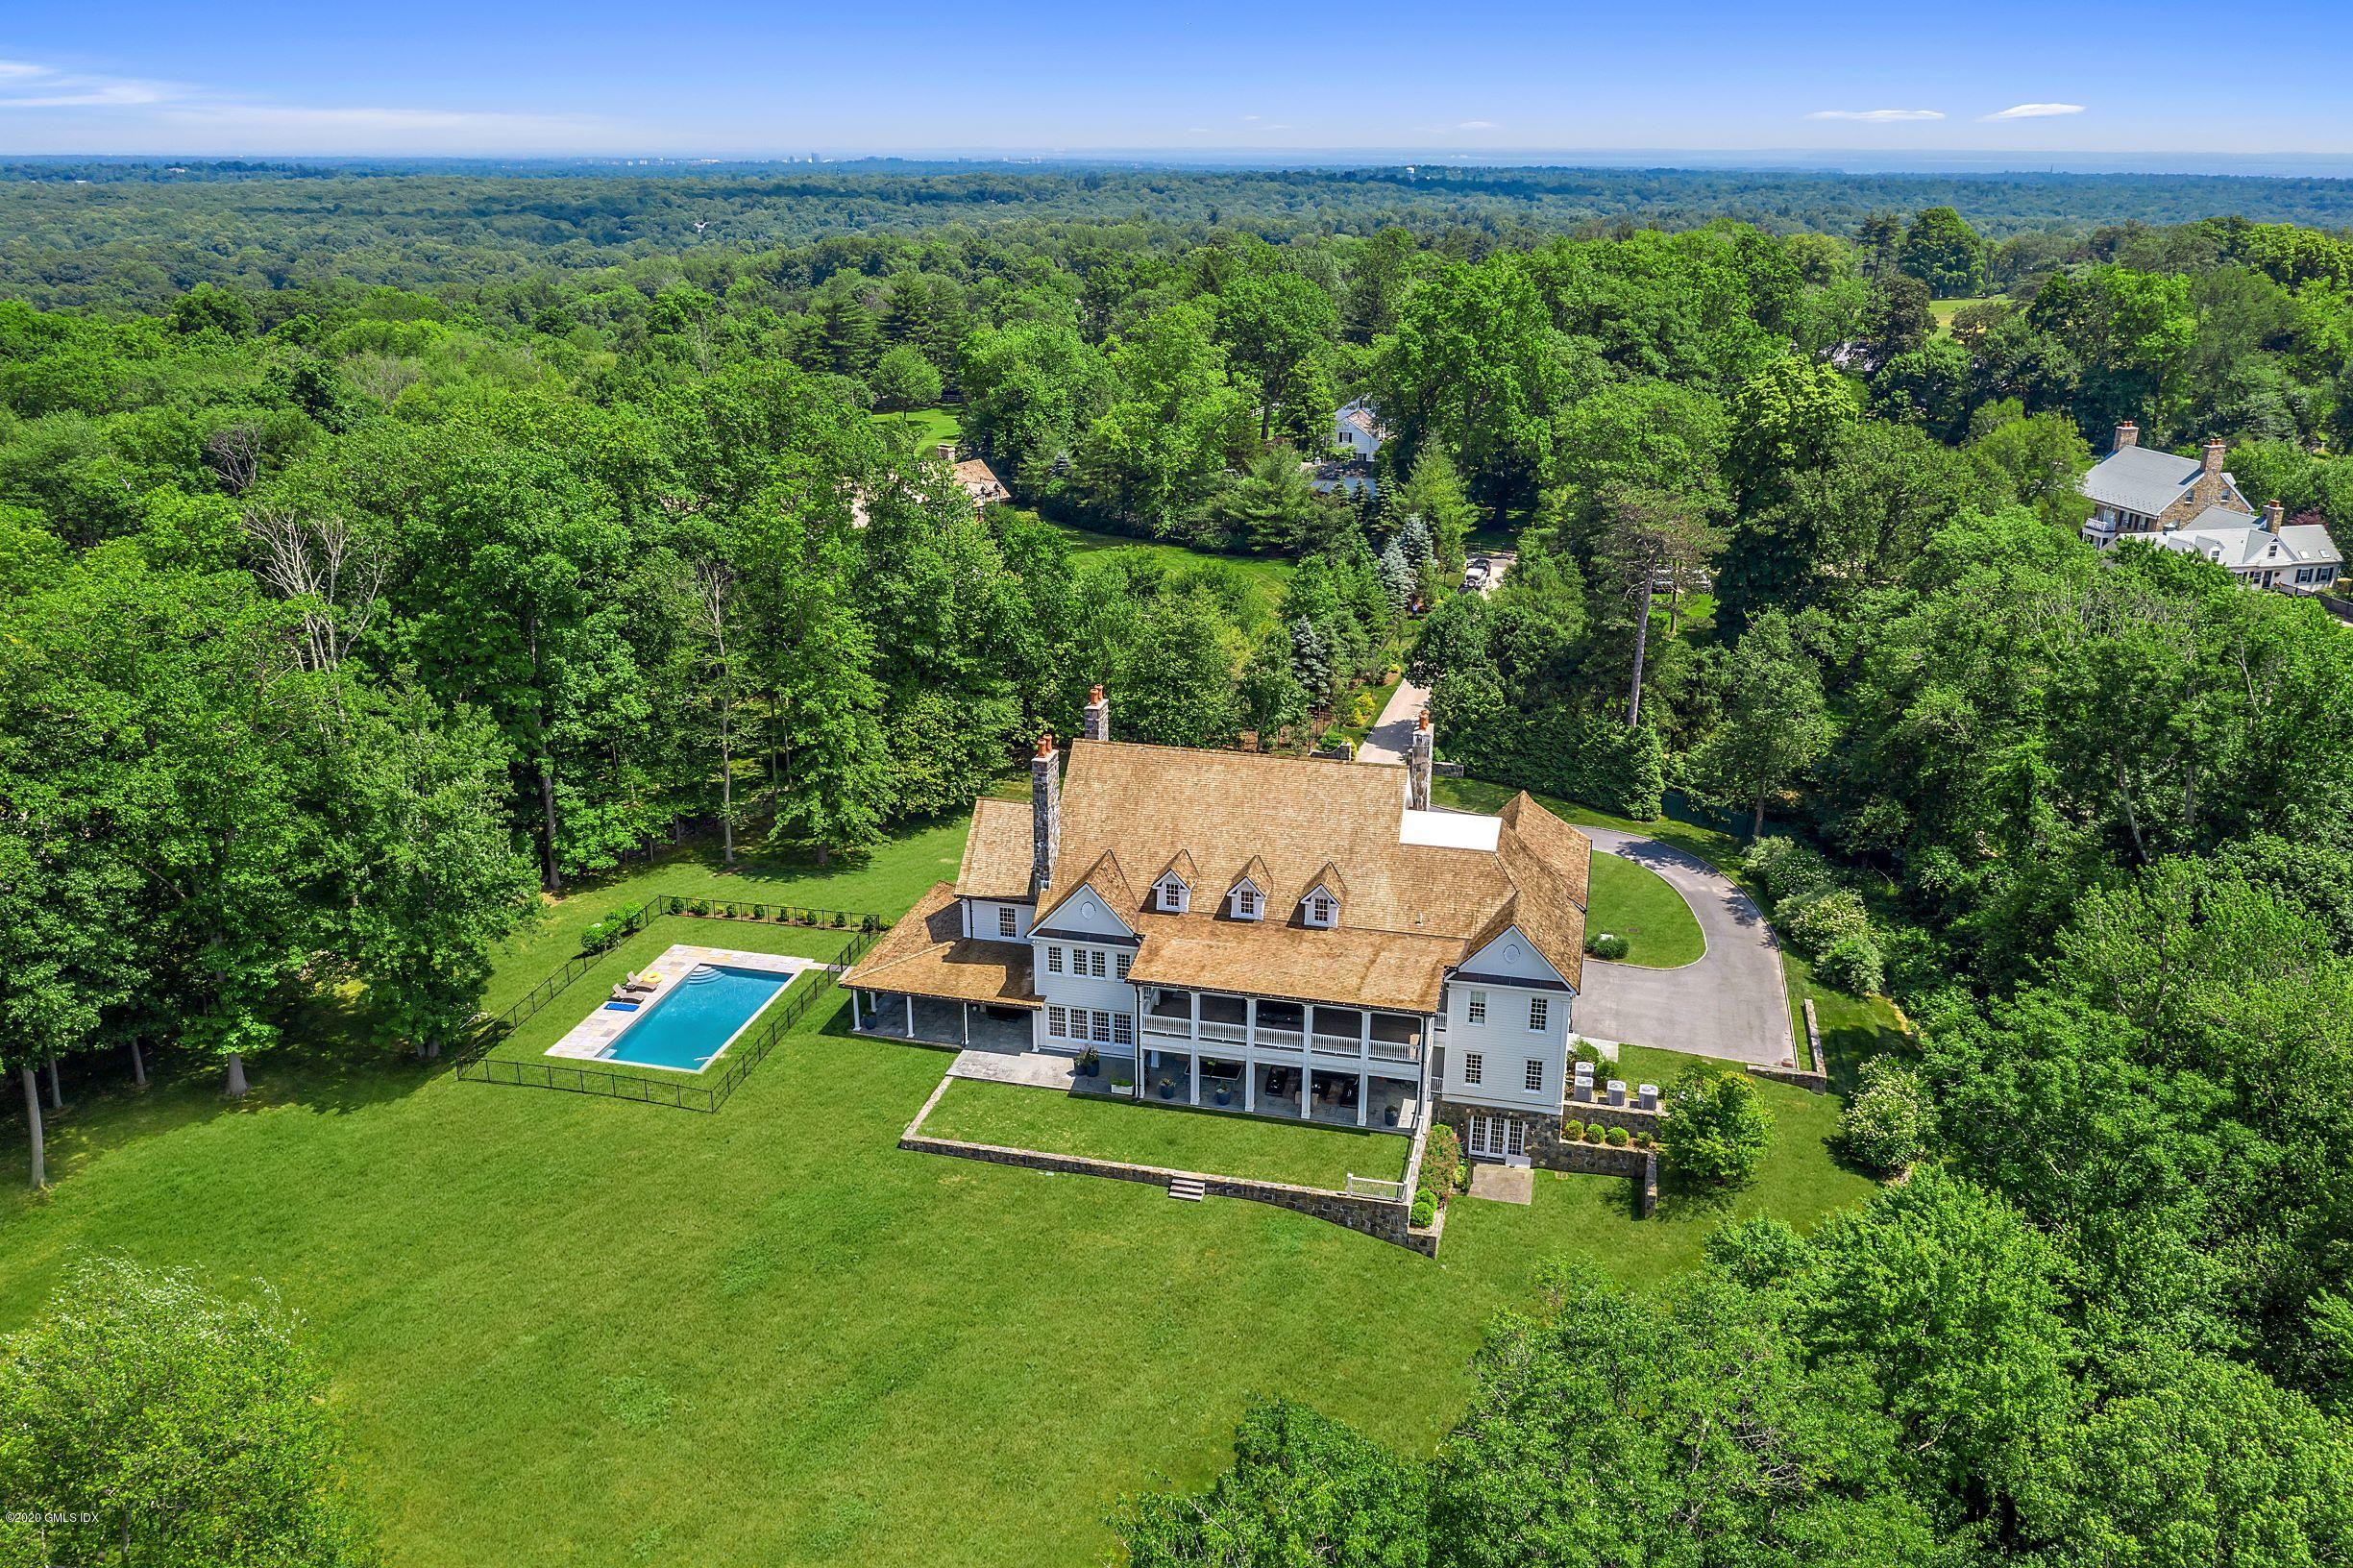 516 Round Hill Road, Greenwich, Connecticut 06831, 6 Bedrooms Bedrooms, ,7 BathroomsBathrooms,Single family,For sale,Round Hill,110211